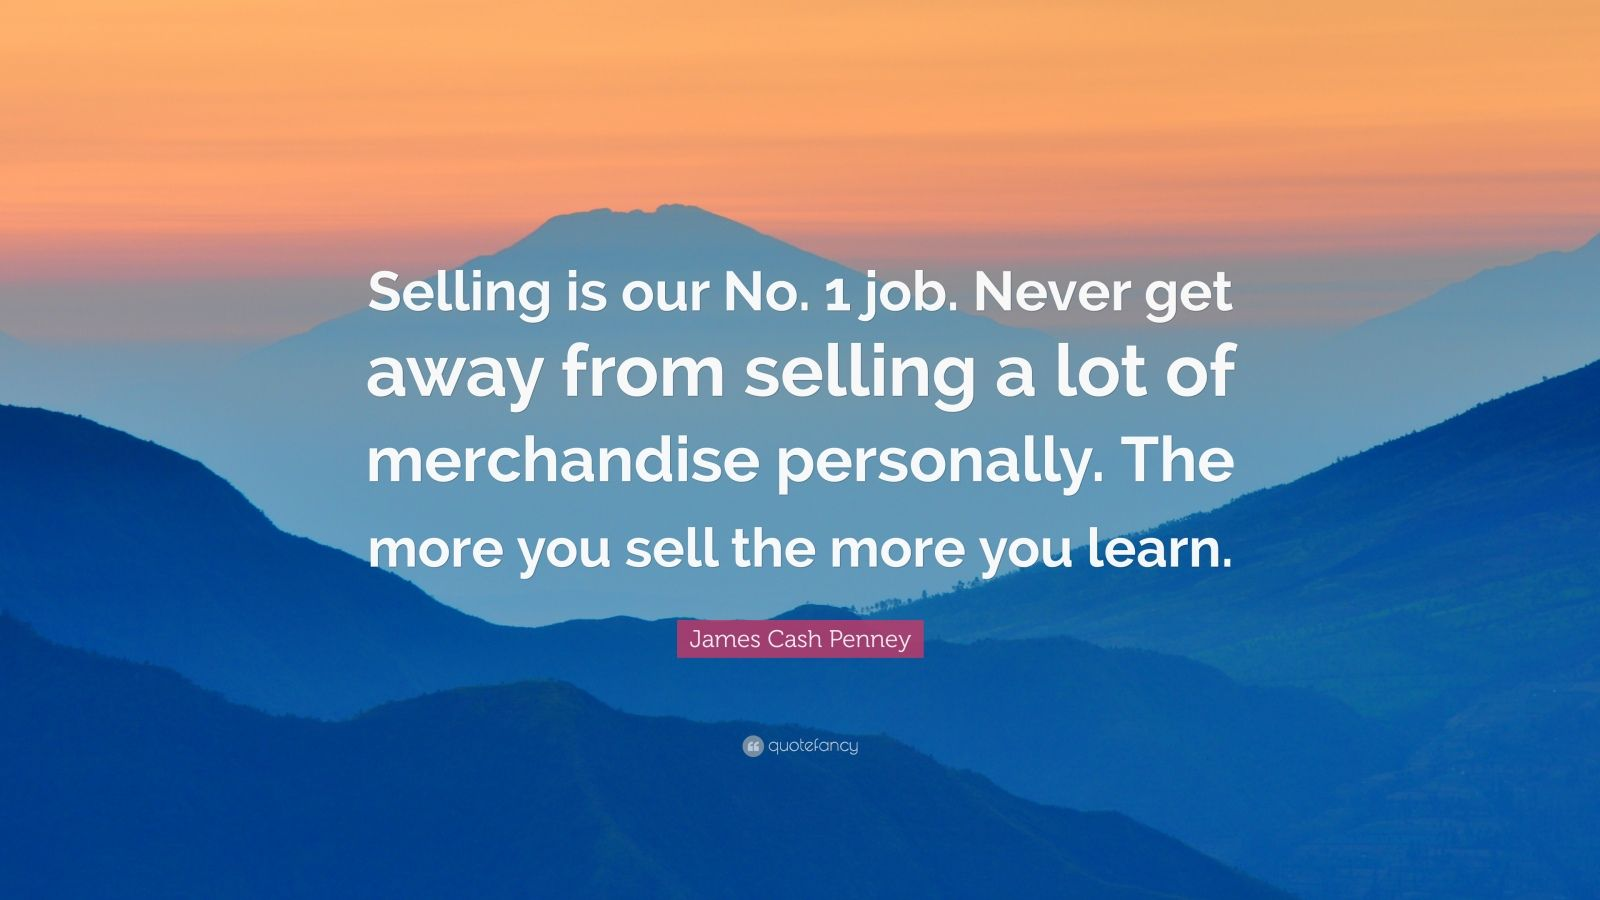 """James Cash Penney Quote: """"Selling is our No. 1 job. Never get away from selling a lot of merchandise personally. The more you sell the more you learn."""""""